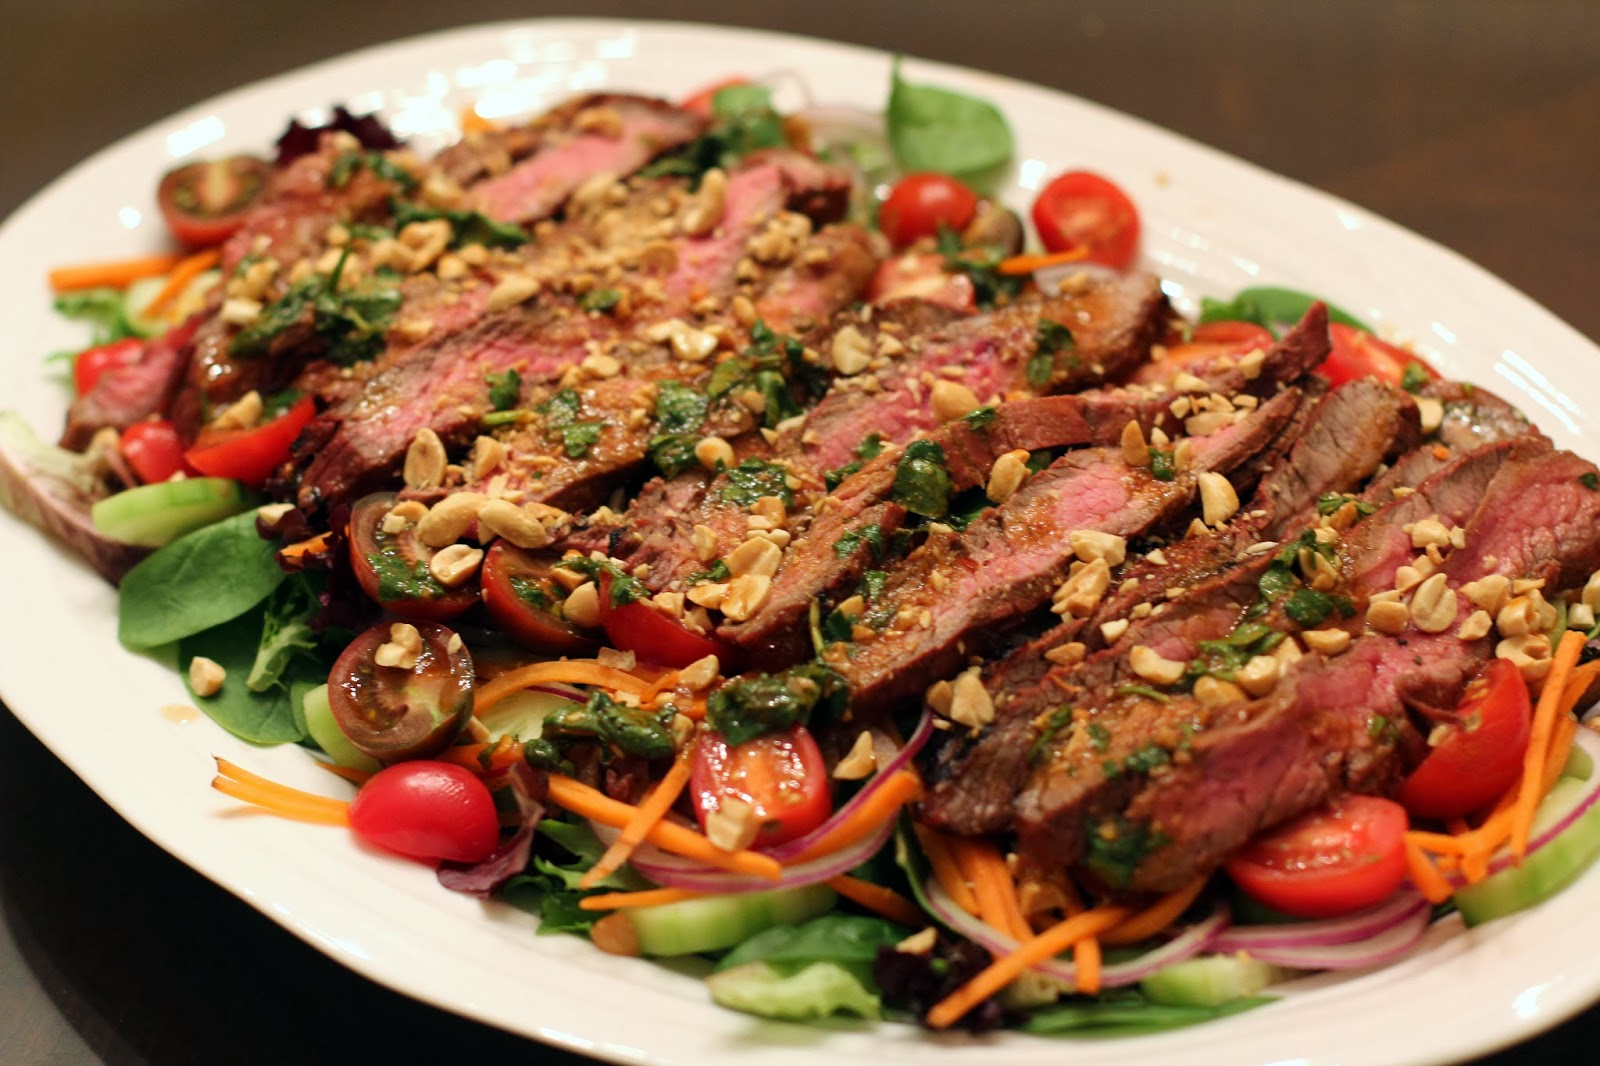 Straight to the Hips, Baby: Spicy Thai Inspired Steak Salad